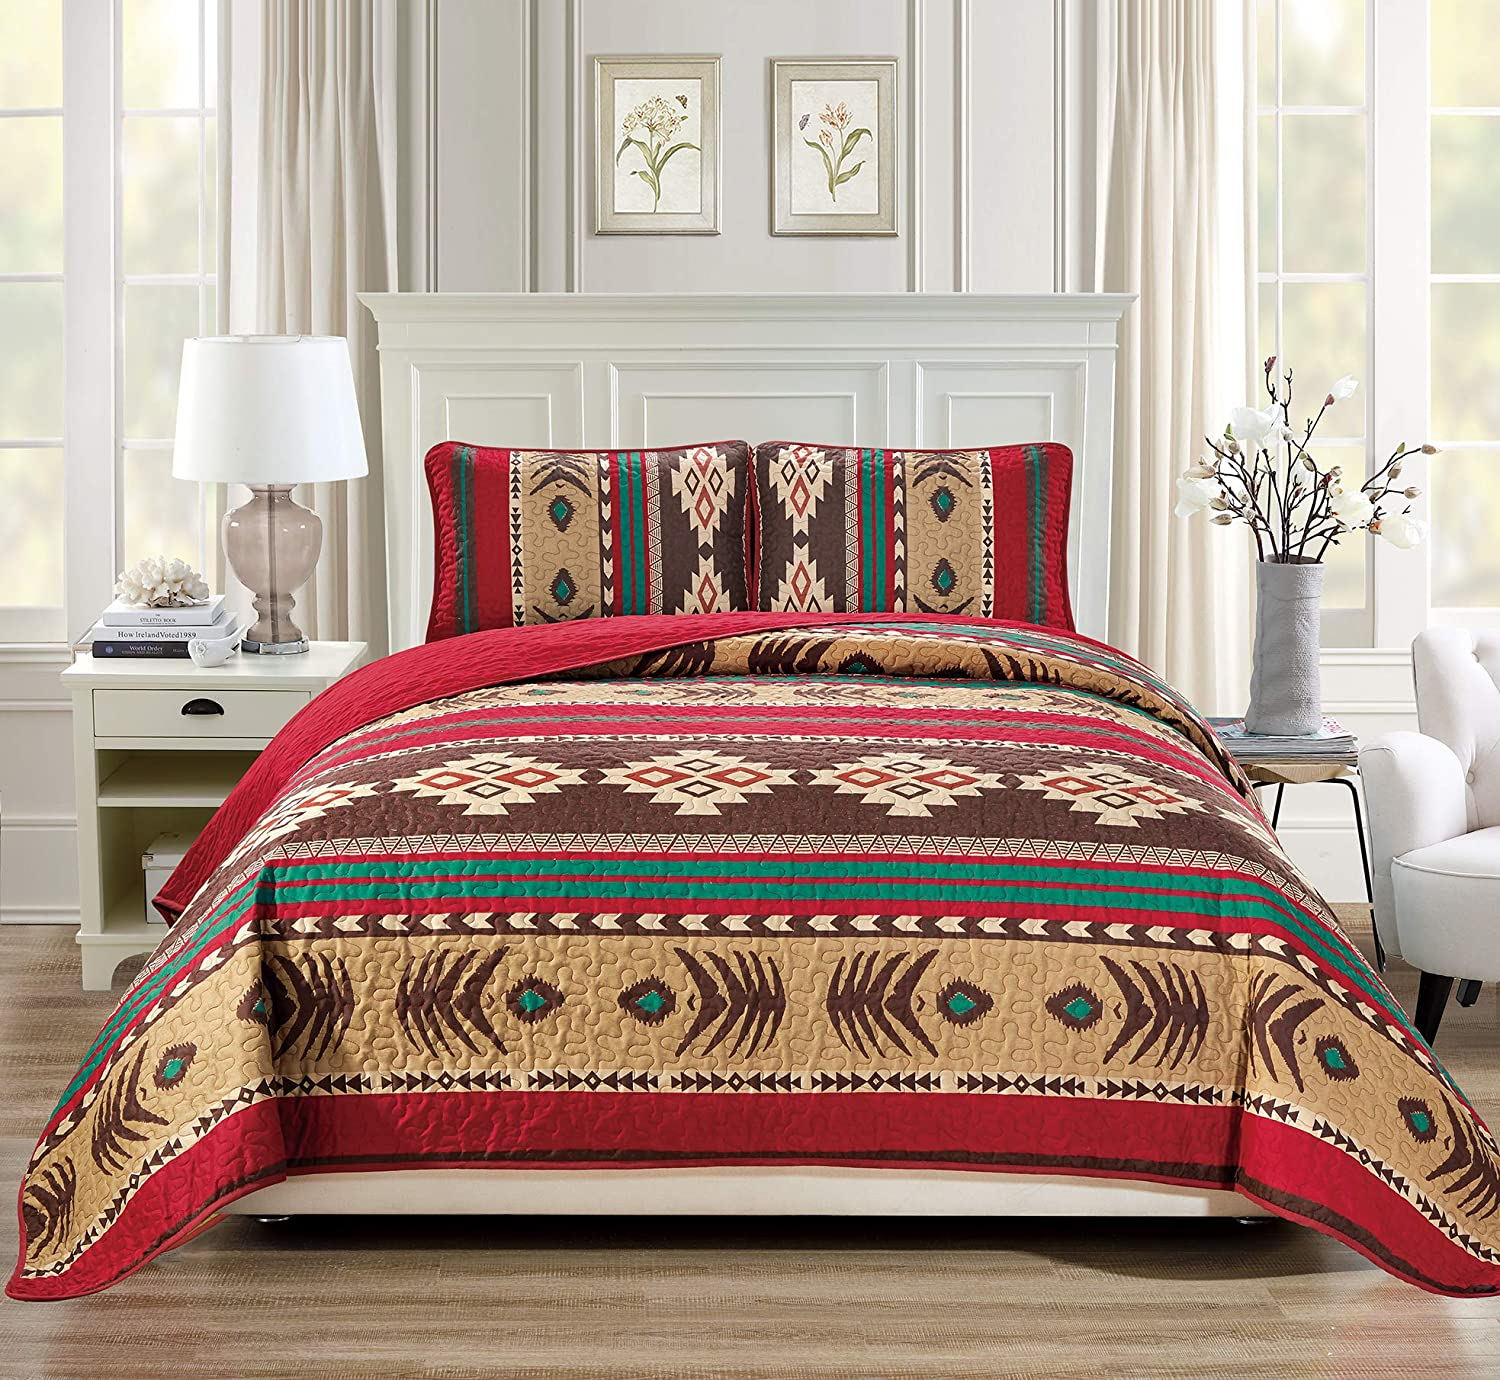 Rugs 4 Less Western Southwestern Native American Tribal Navajo Design Two Piece in Brown Green and Burgundy Oversize Twin/Twin XL Bedspread Quilt Set (Twin) 2pc Mojave Twin